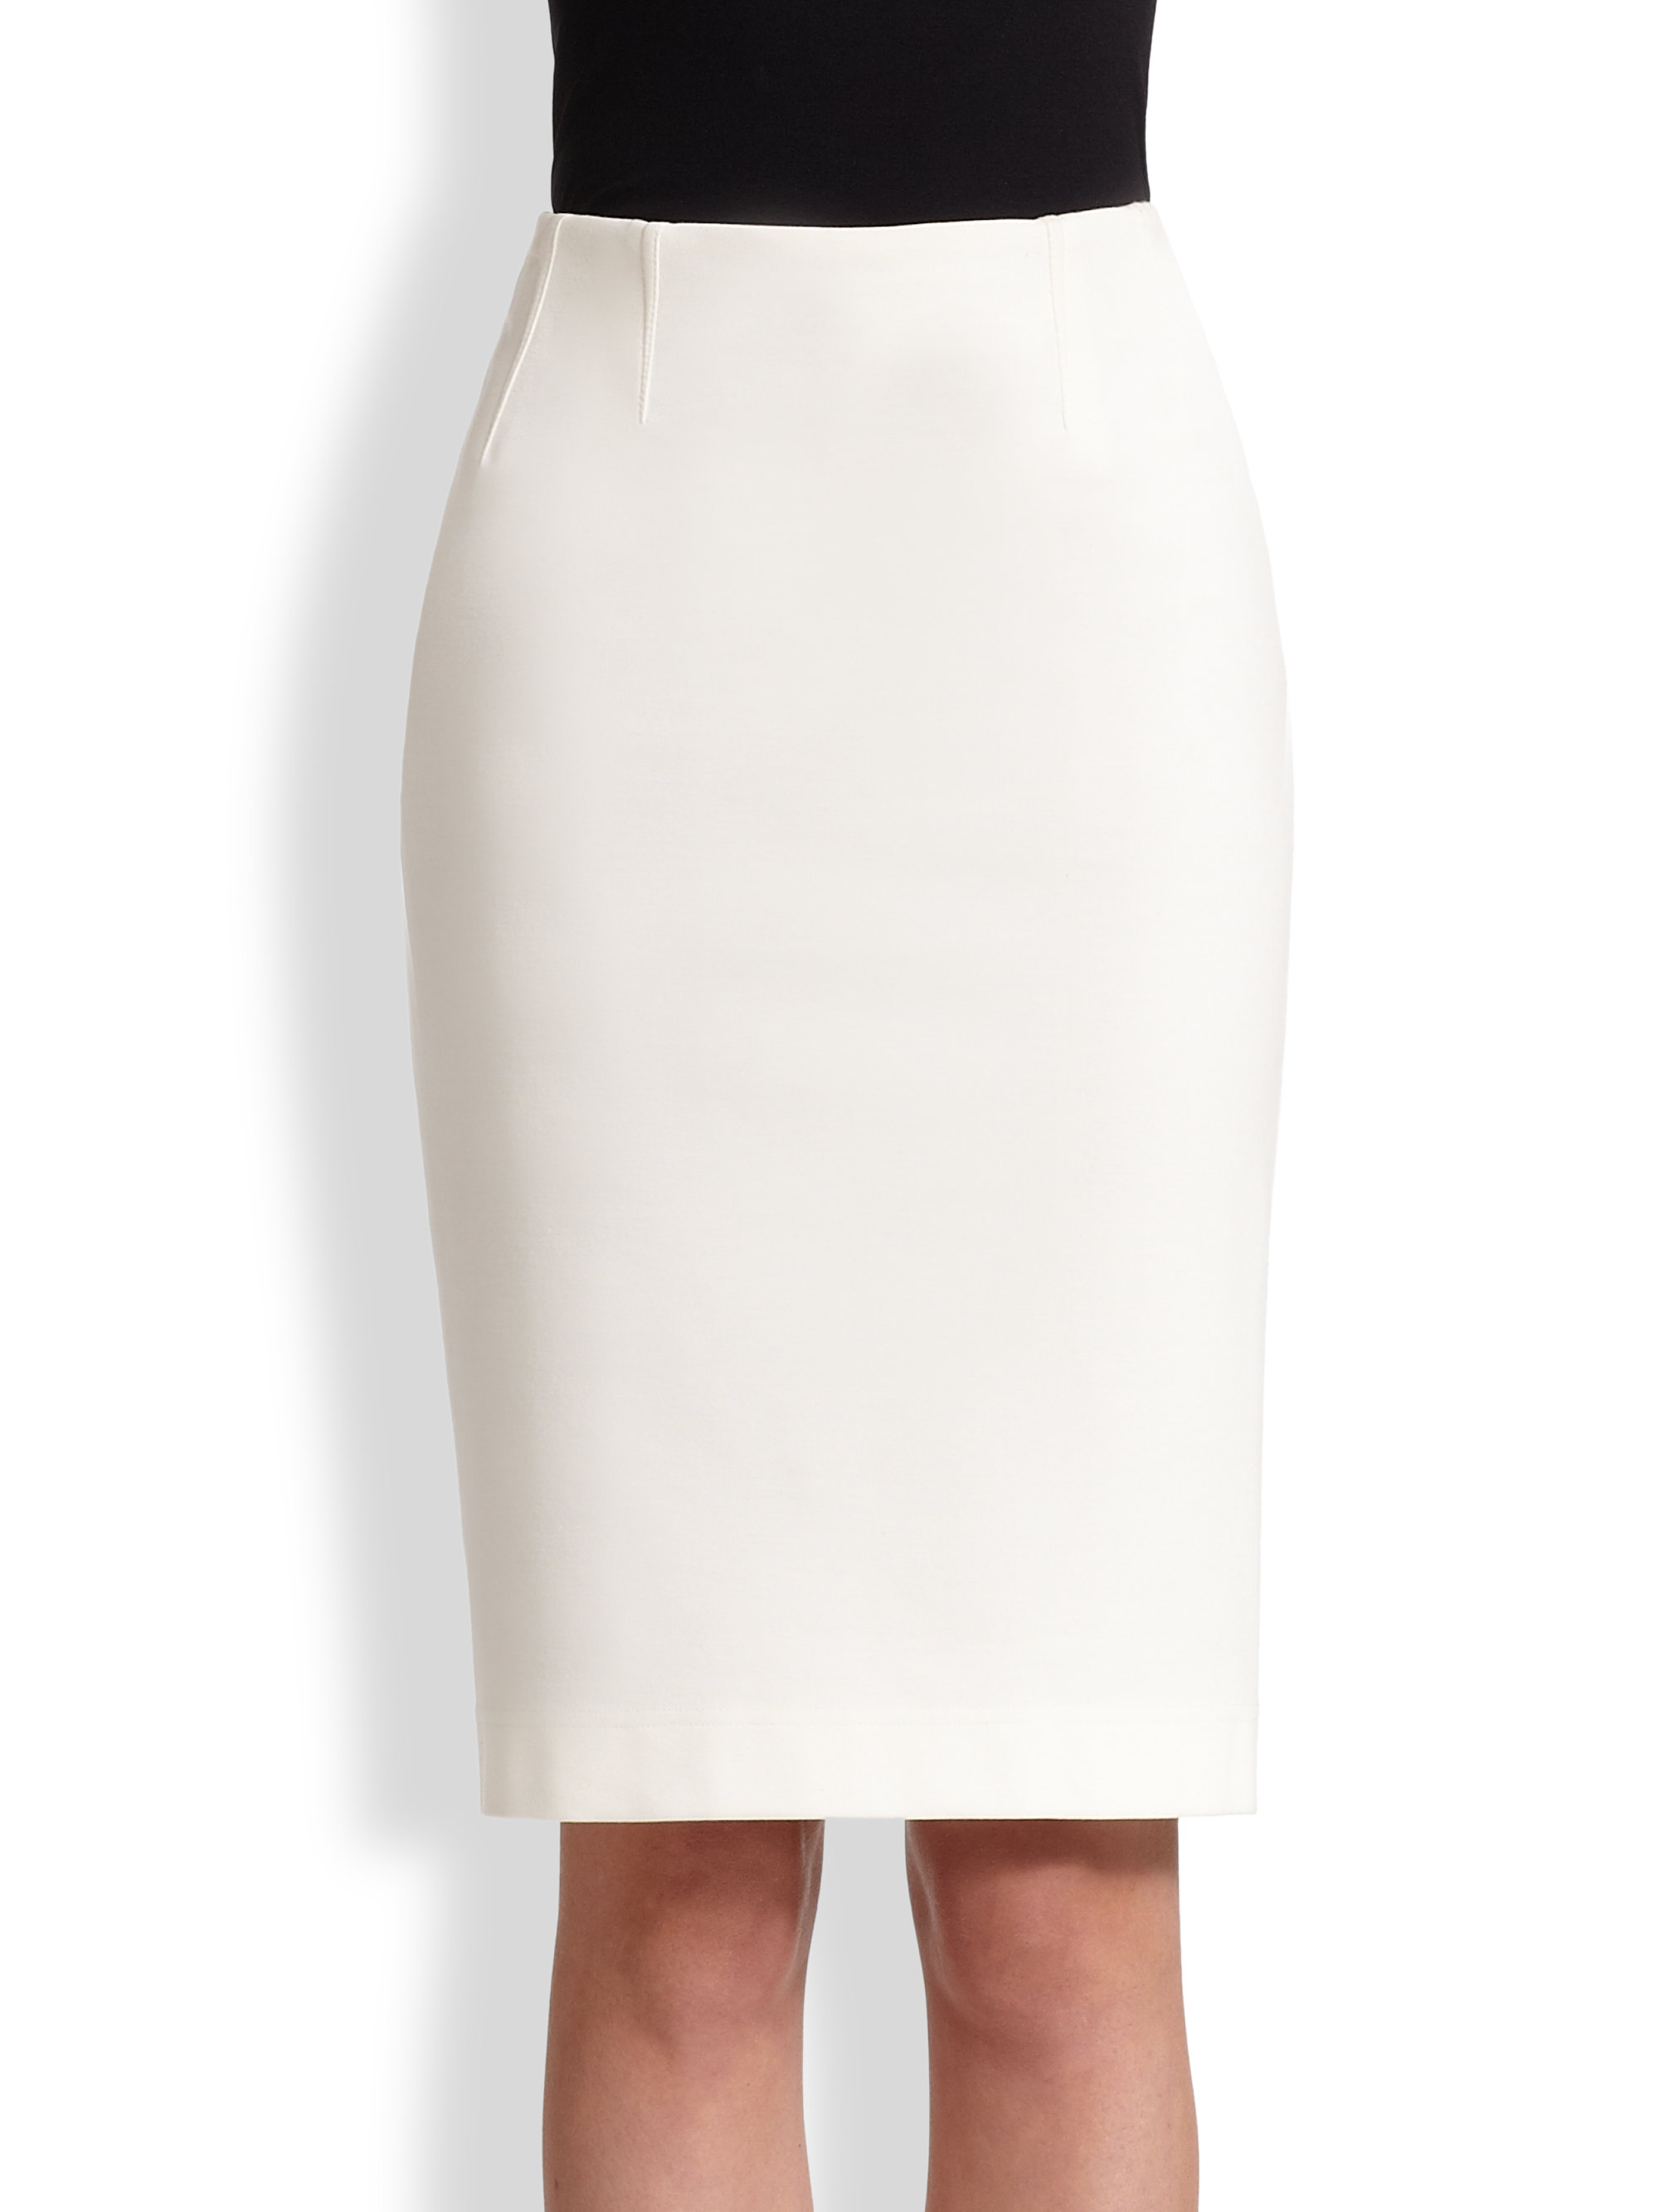 Discover pencil skirts at ASOS. From bodycon to tube skirts, shop your favorite colors and styles. The streamline pencil skirt remains an elegant classic.